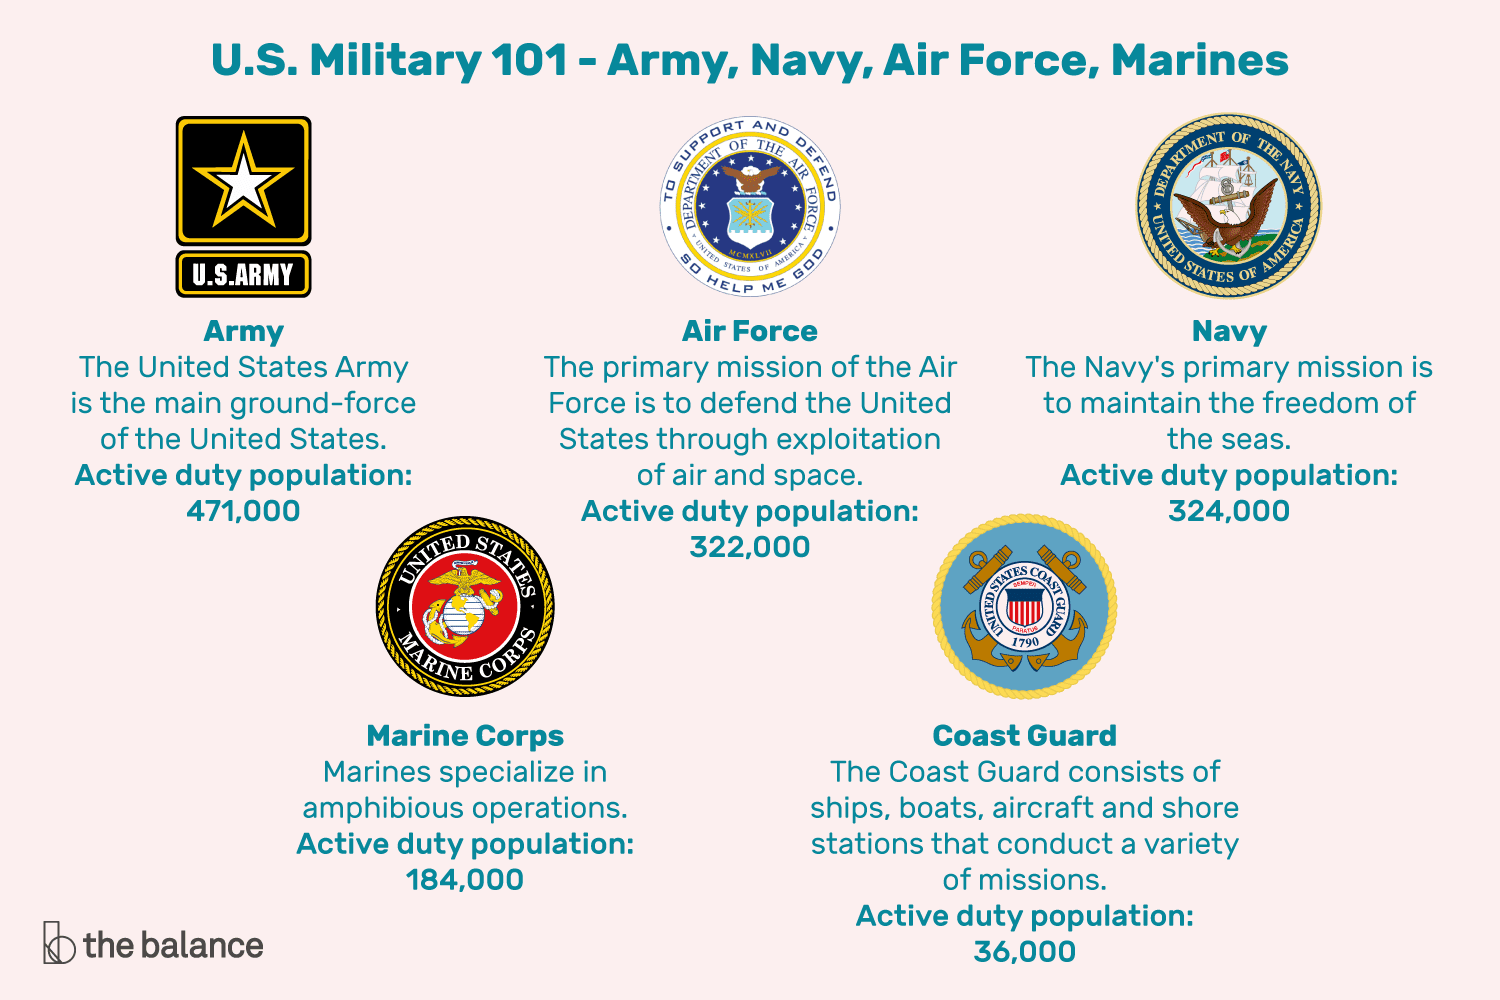 Marine Ranks In Order >> U S Military 101 Army Navy Air Force Marines And Coast Guard